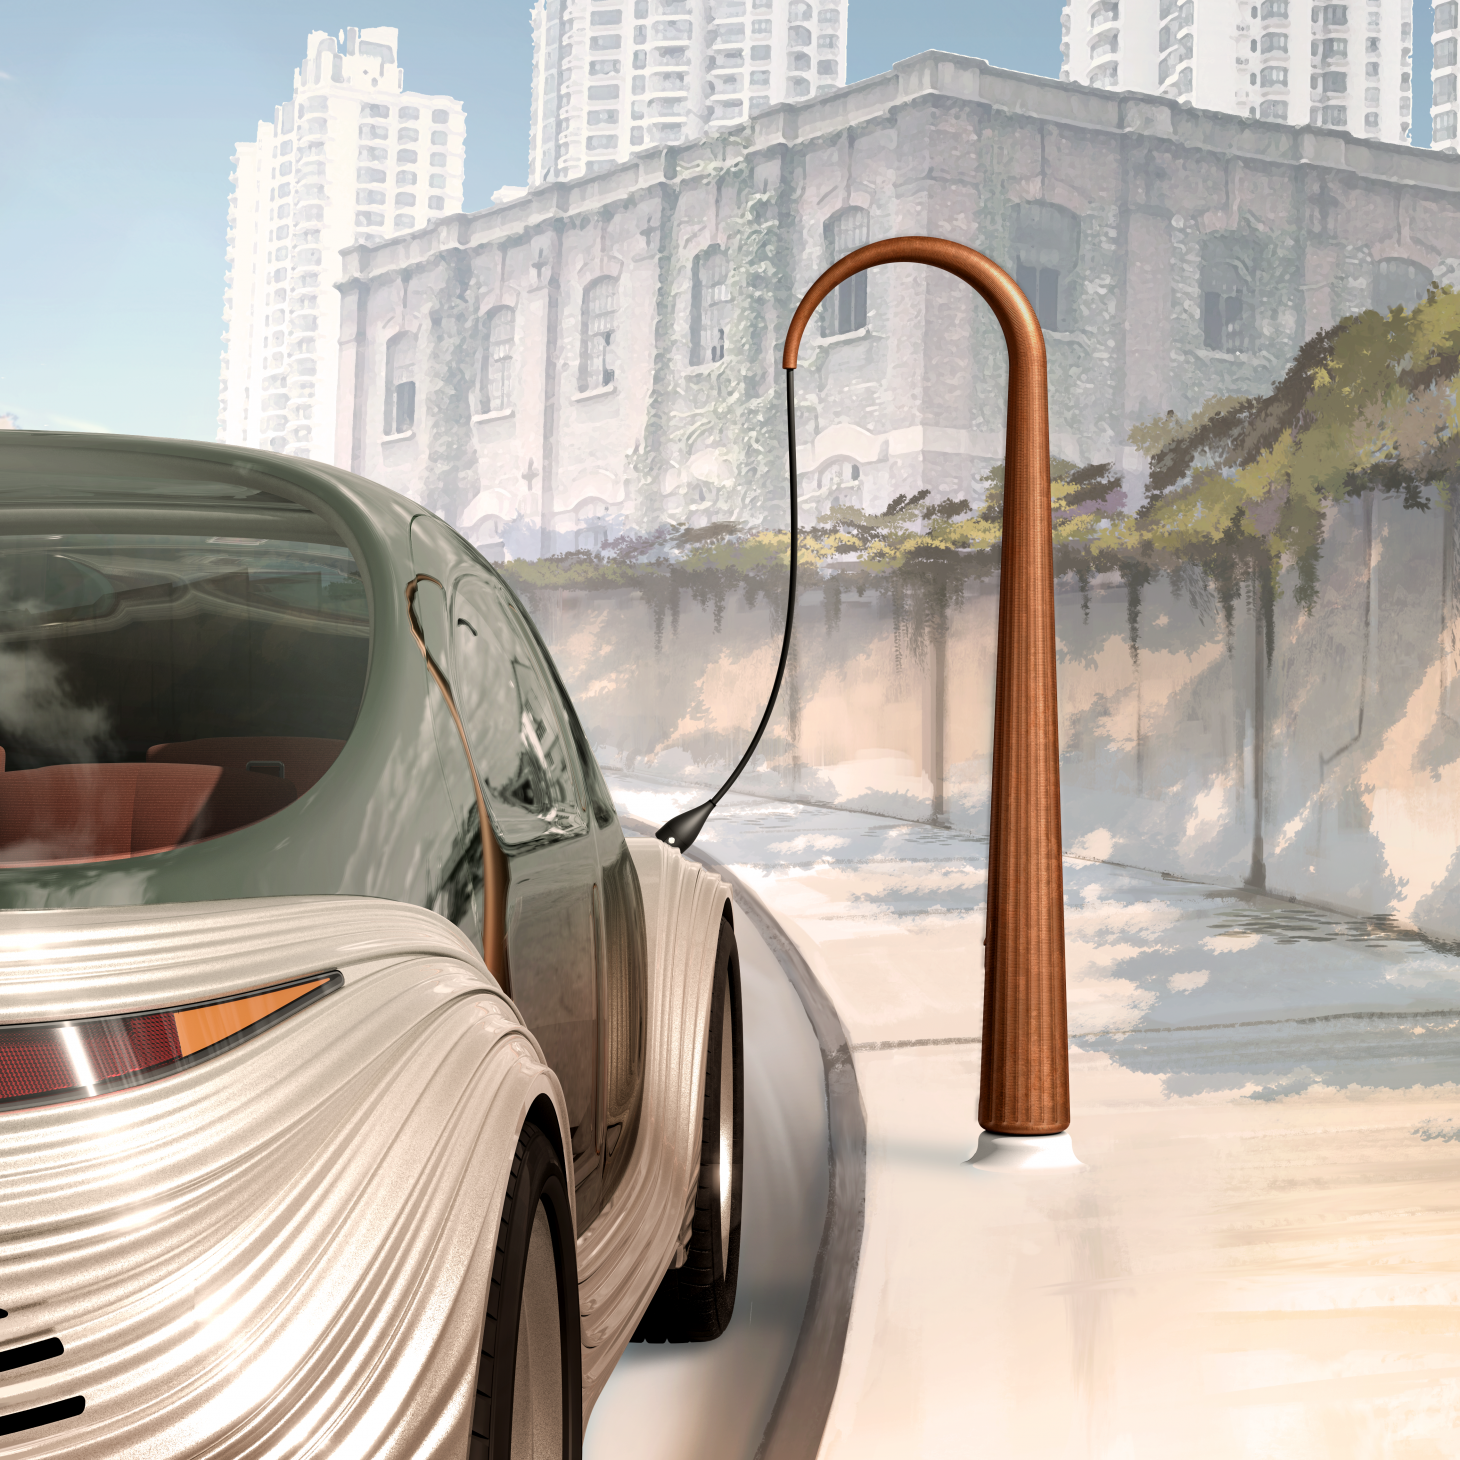 Airo concept and charge station from IM Motors, designed by Heatherwick Studio